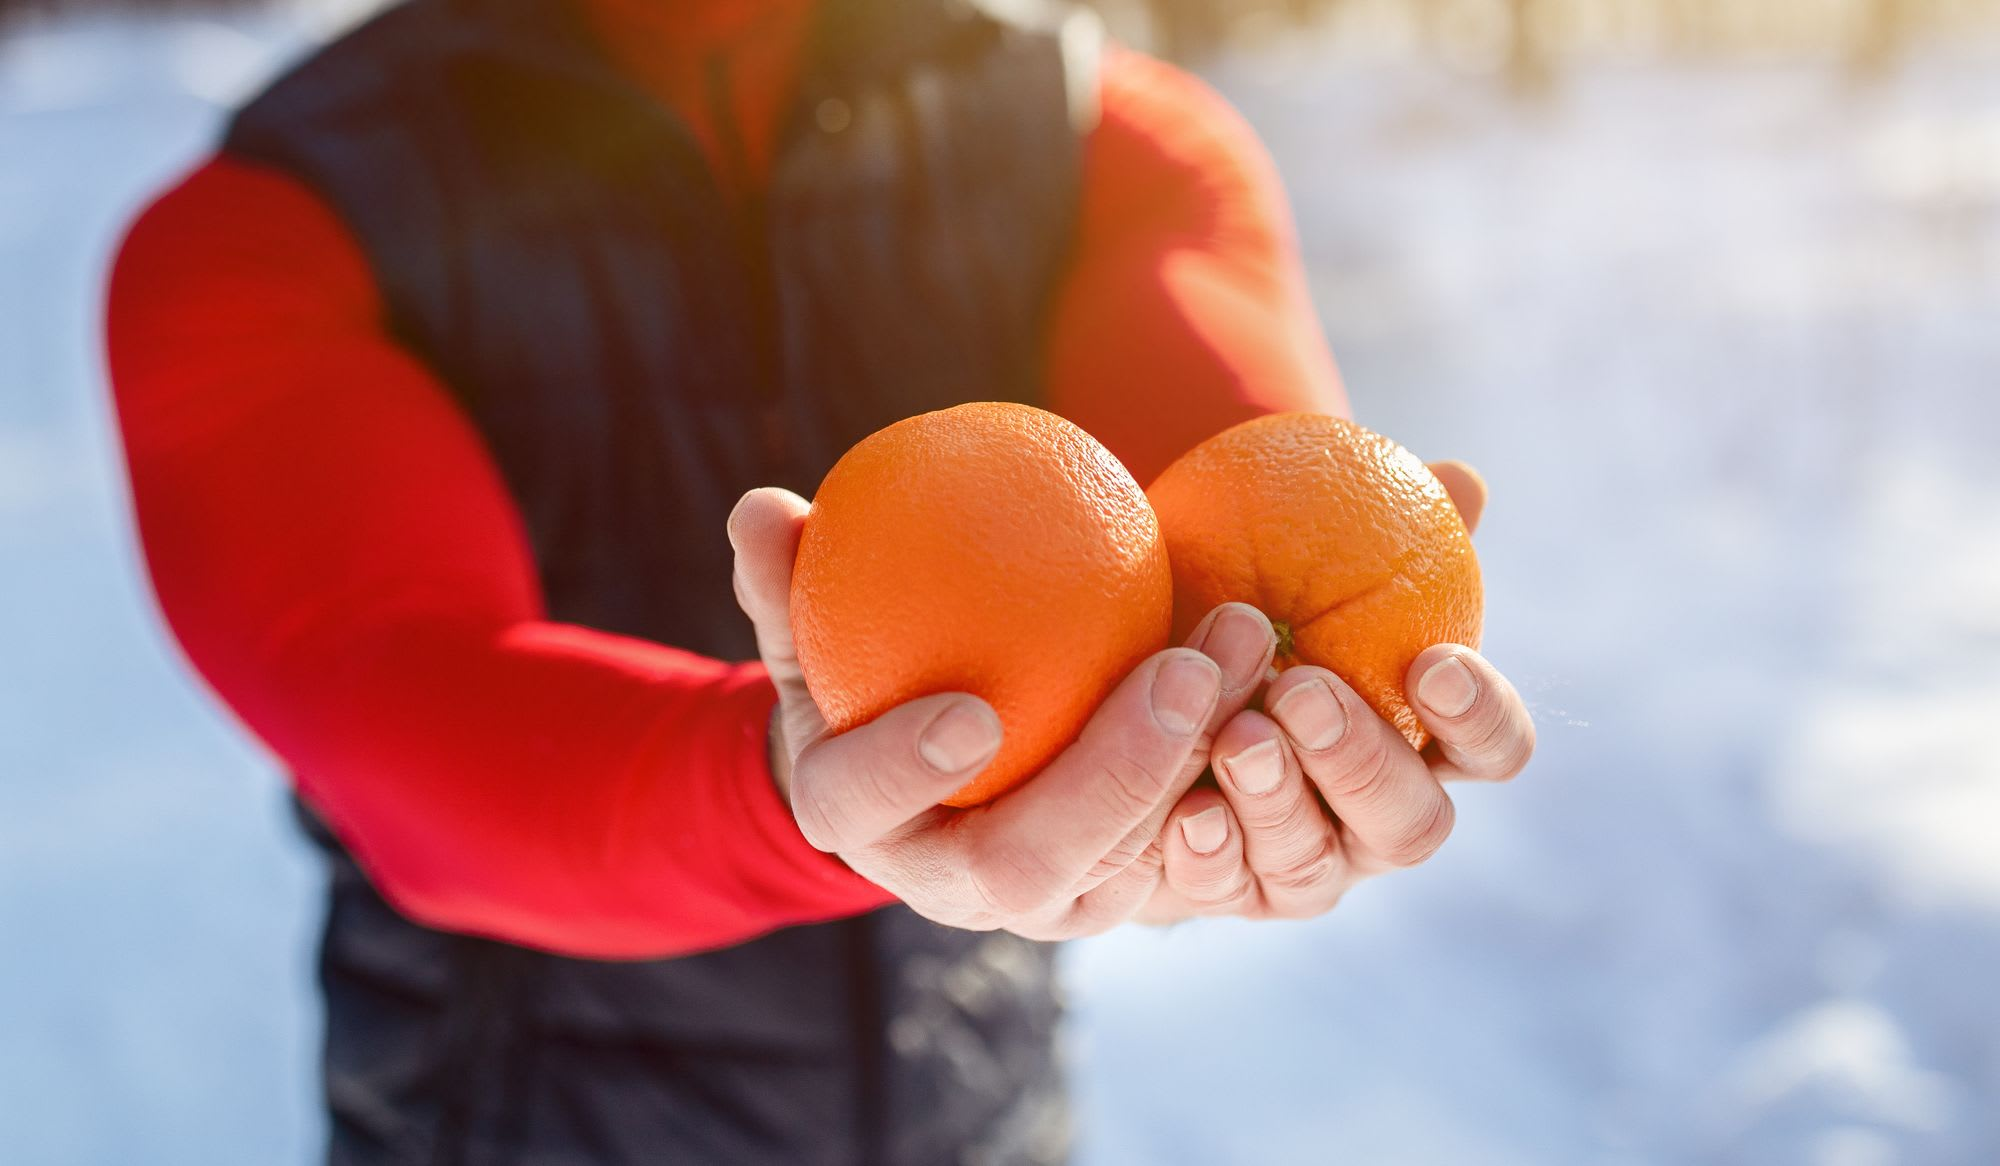 Closeup of fit mature man holding oranges as healthy snack after morning workout at snowy winter